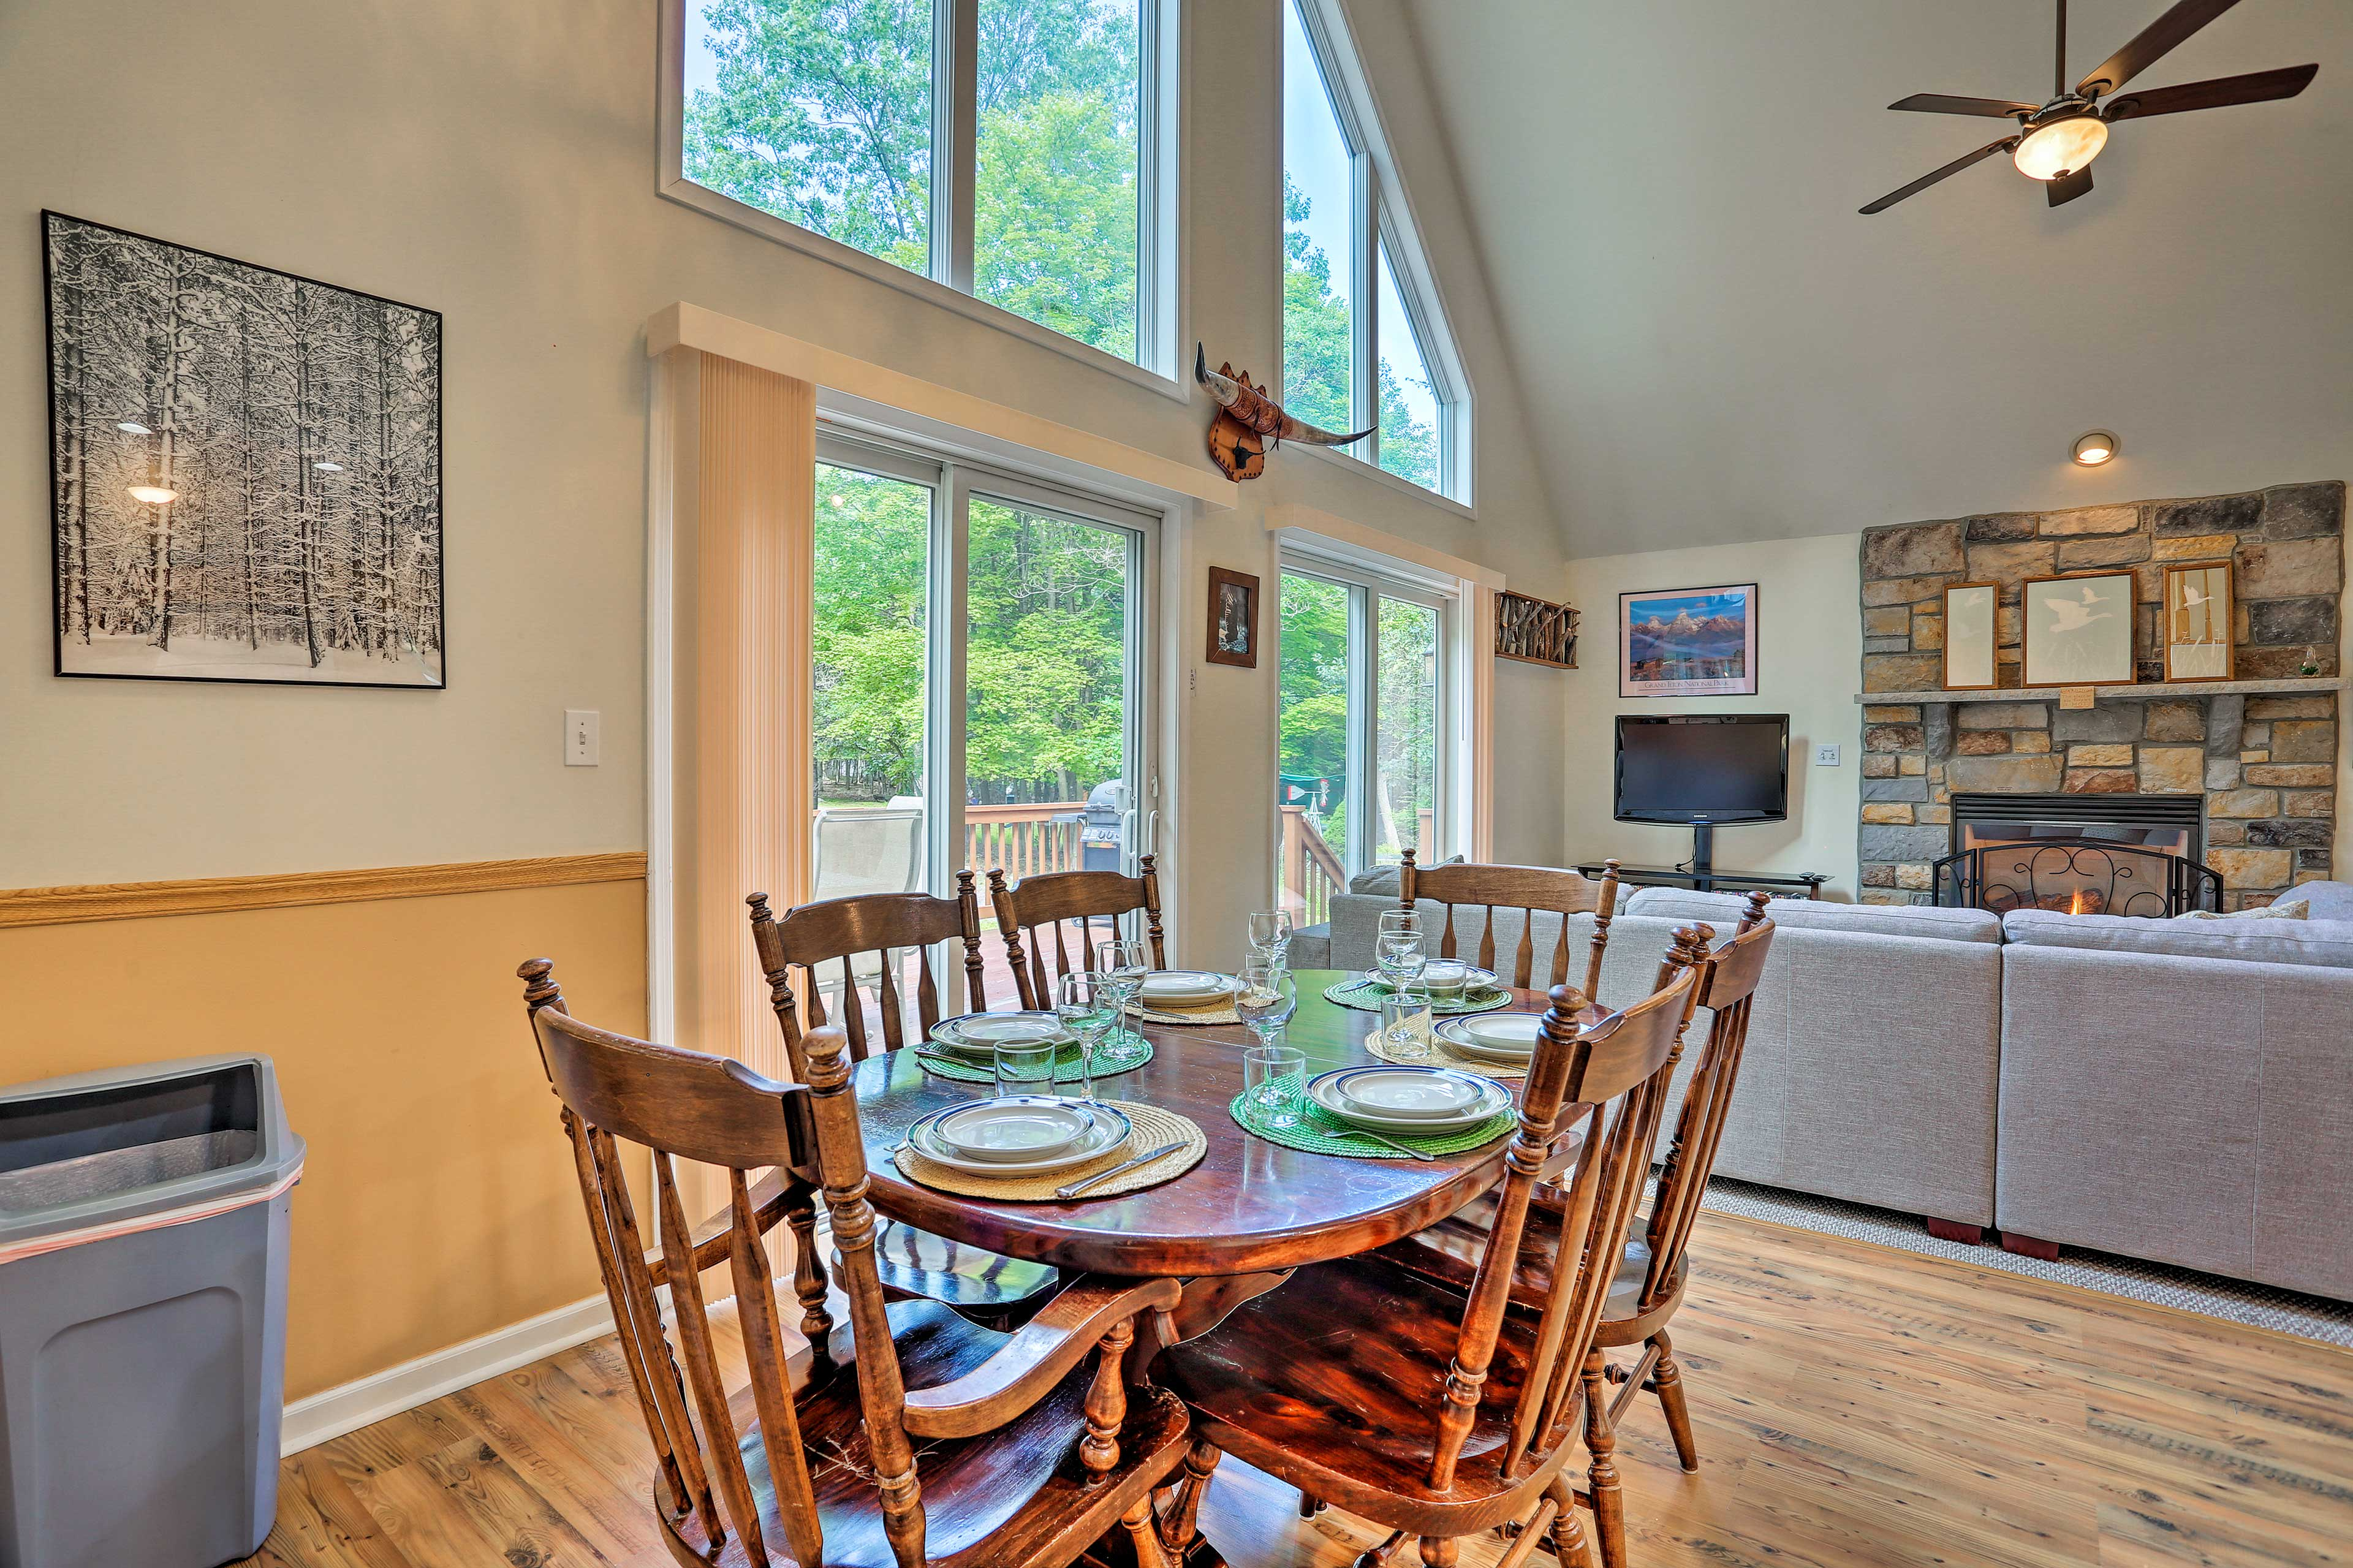 Gather around the dining table for a memorable meal!